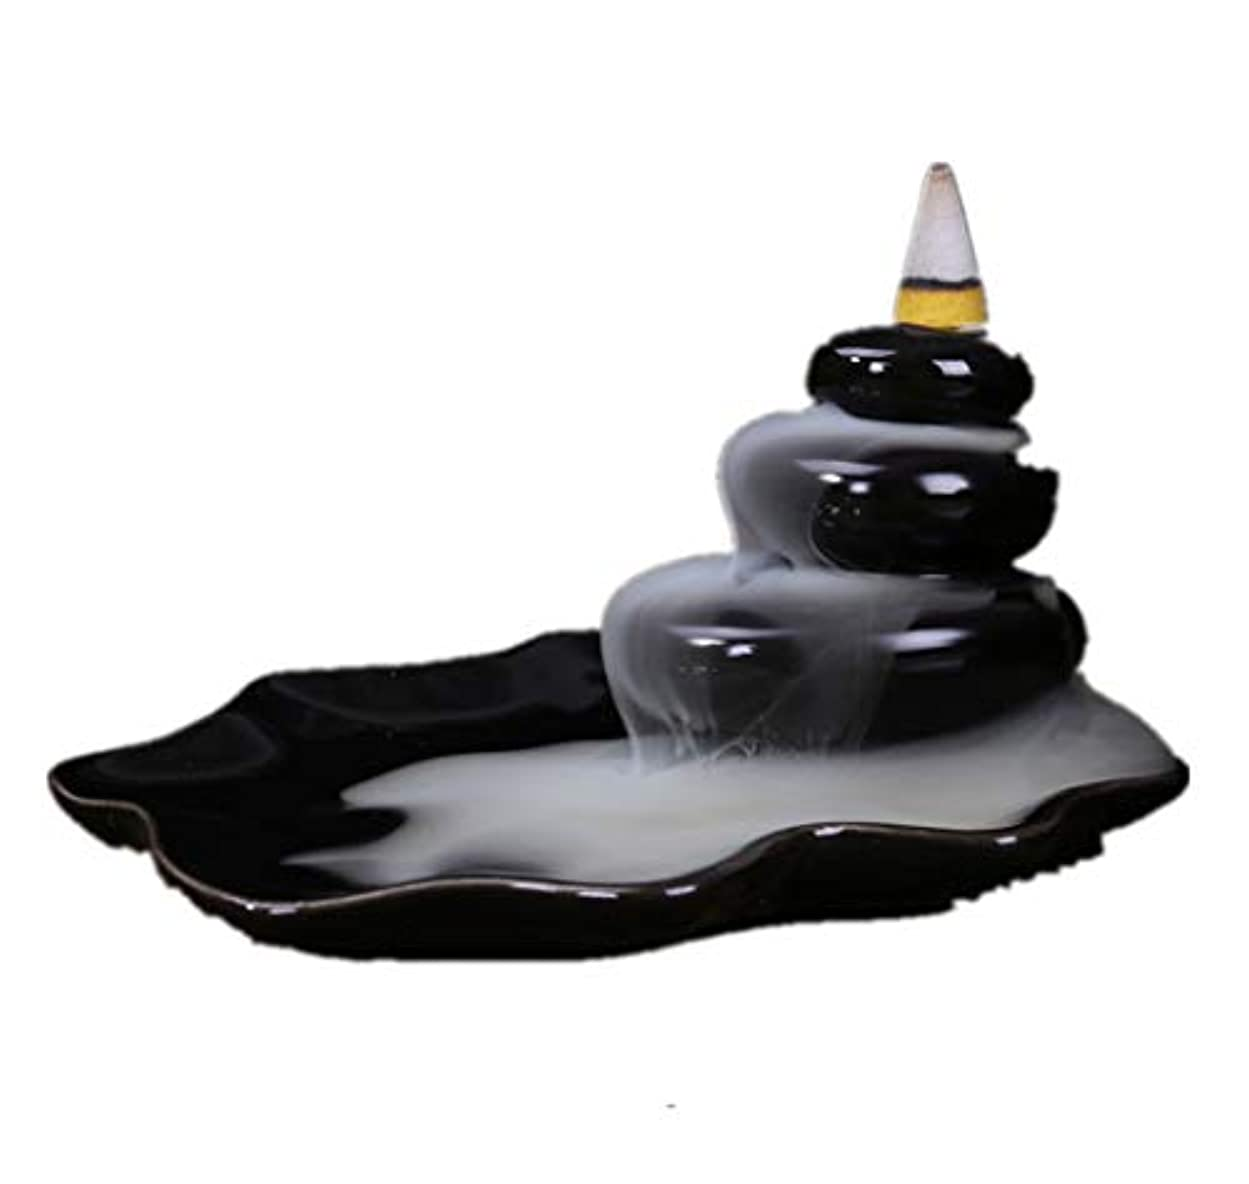 生物学食器棚完了XPPXPP Backflow Incense Burner, Household Ceramic Returning Cone-shaped Candlestick Burner